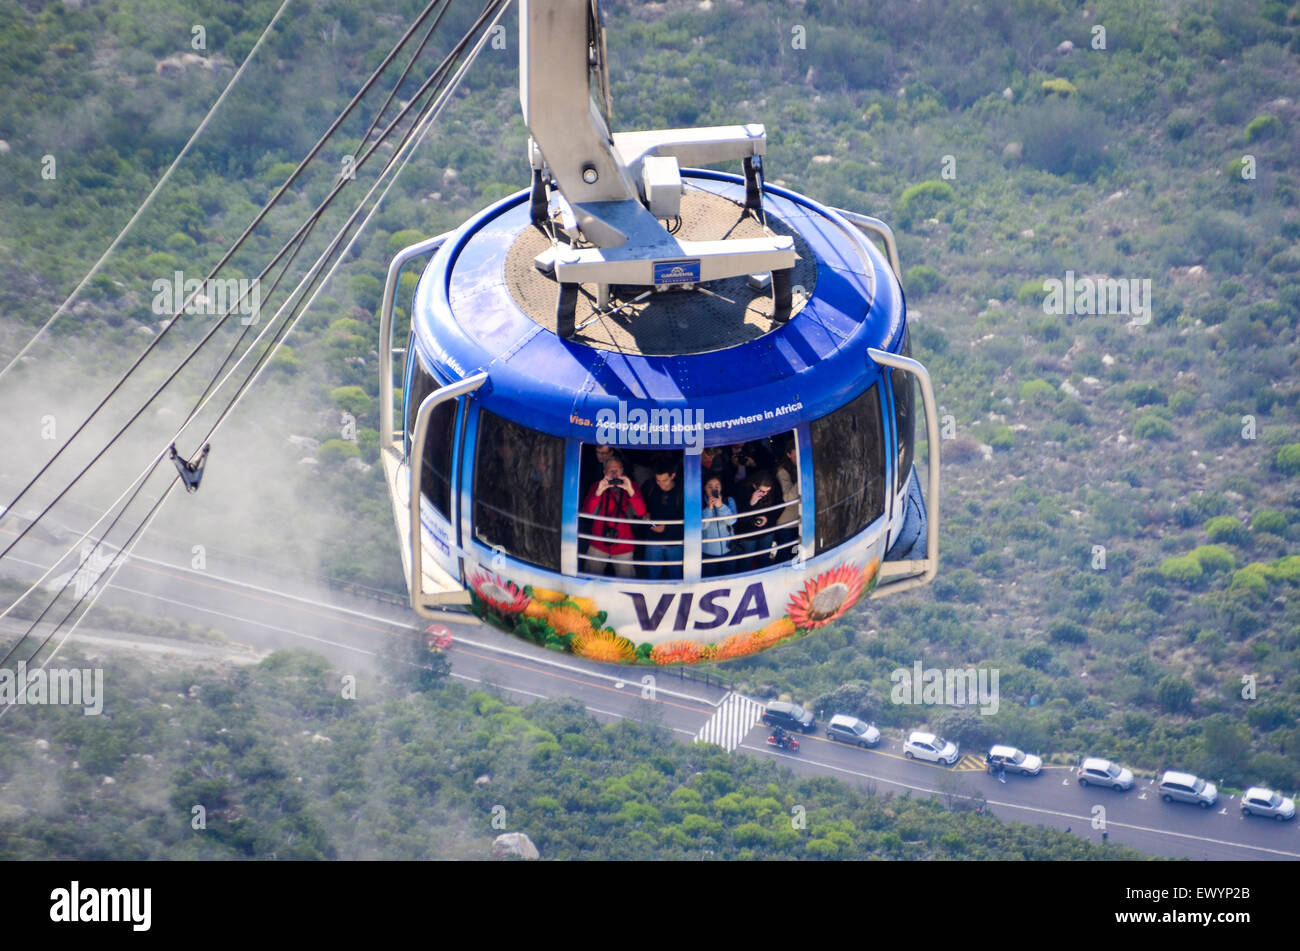 VISA logo on the Cable car of the Table Mountain aerial cableway, Cape Town, rising in the sky above the clouds - Stock Image